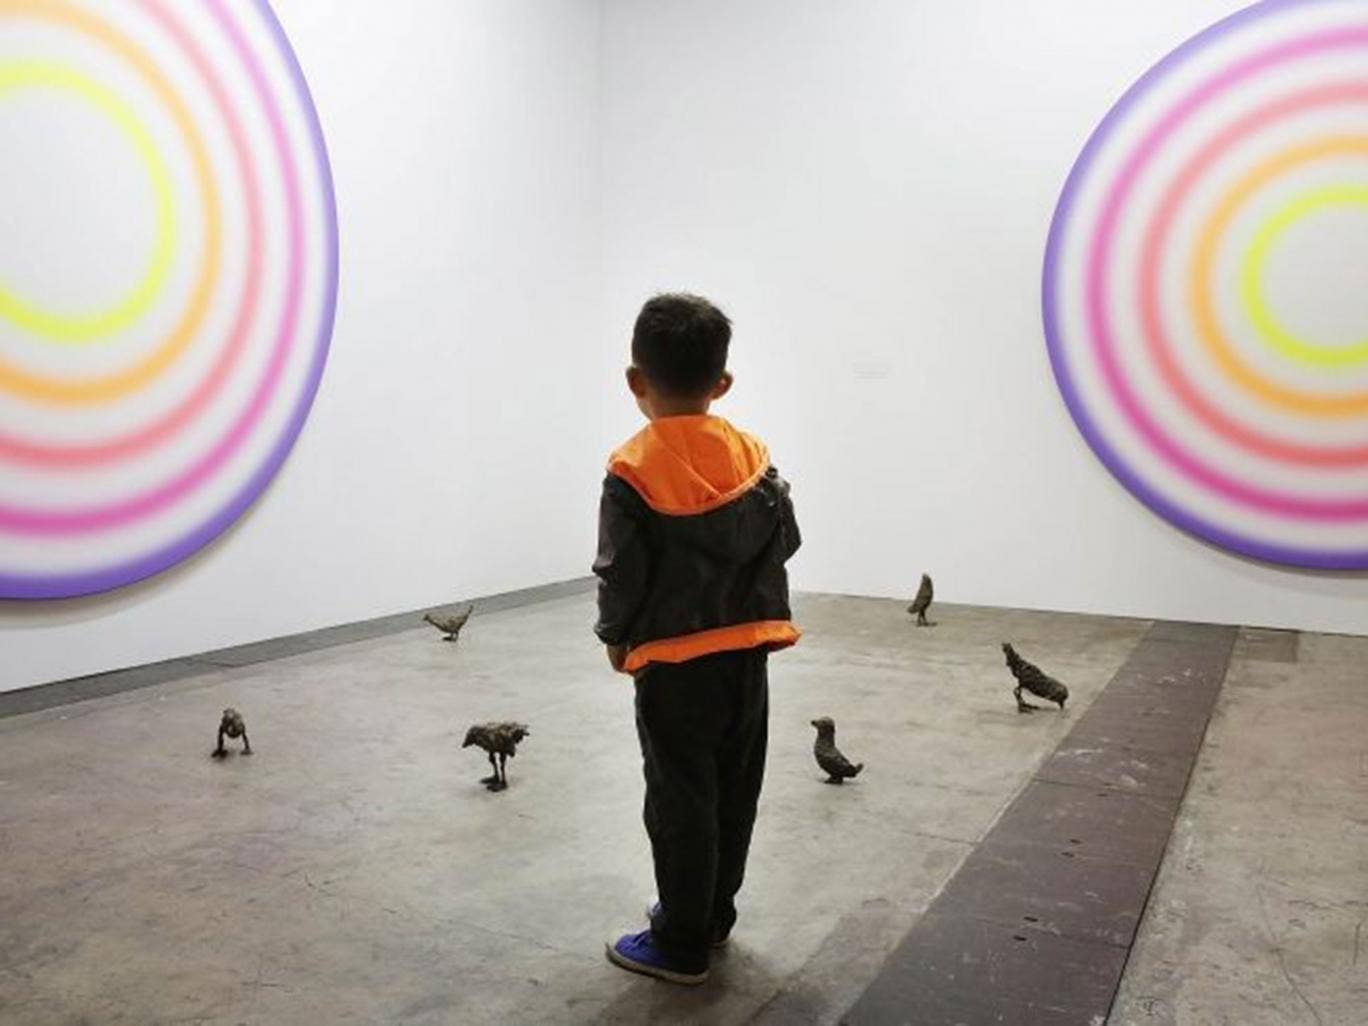 A gallery visit? Leave the children at home, says top artist